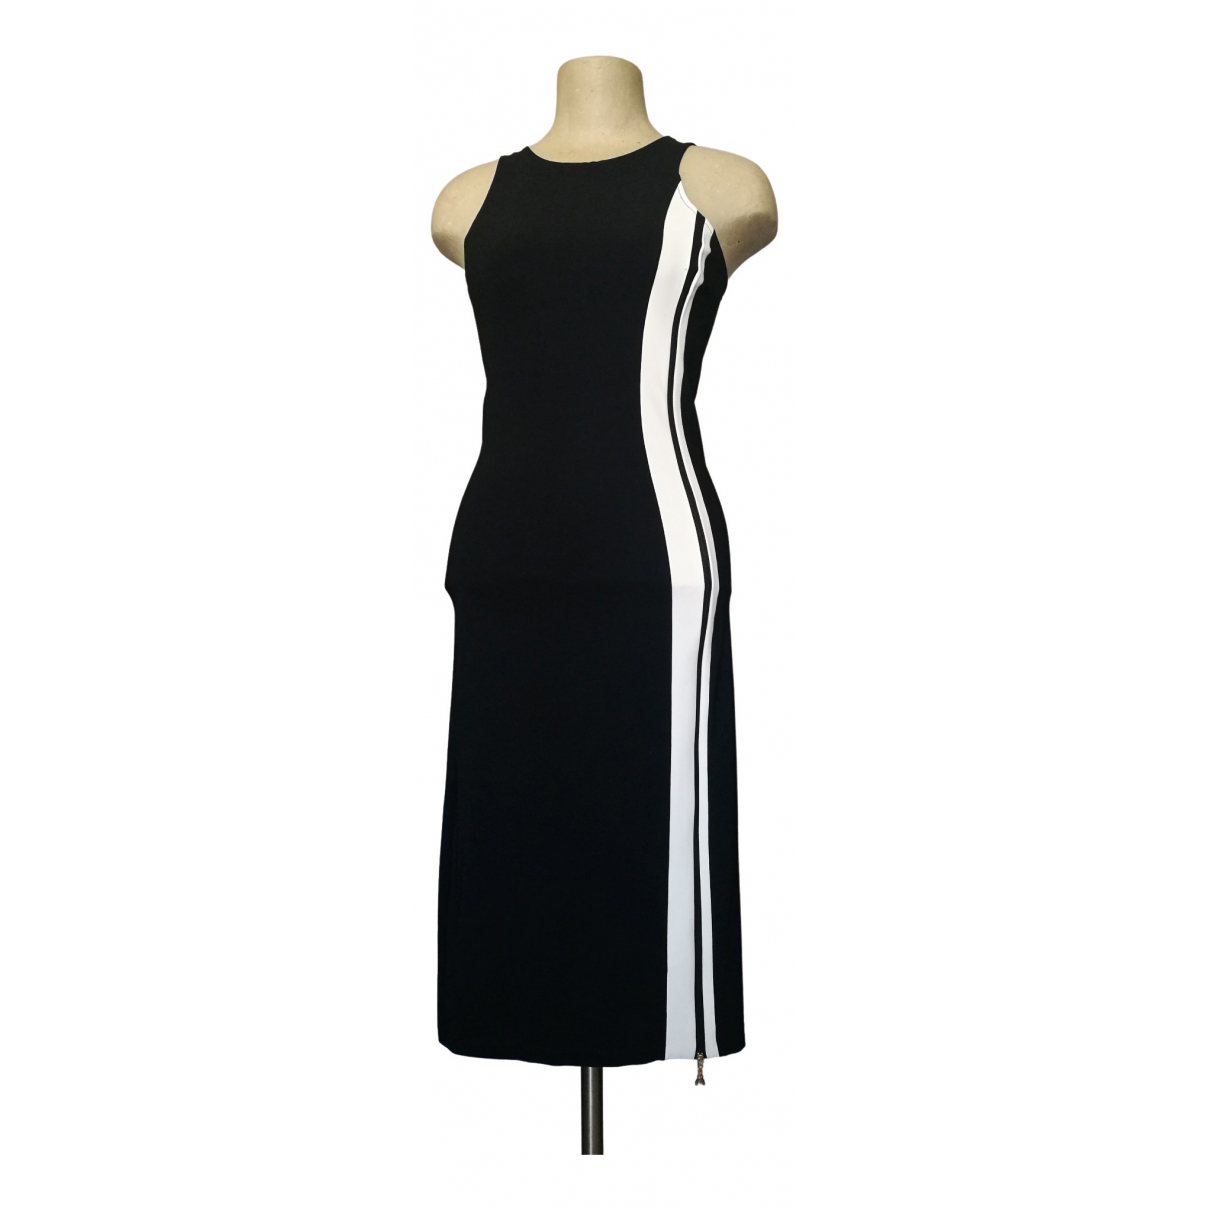 Patrizia Pepe \N Black Cotton - elasthane dress for Women 000 0-5